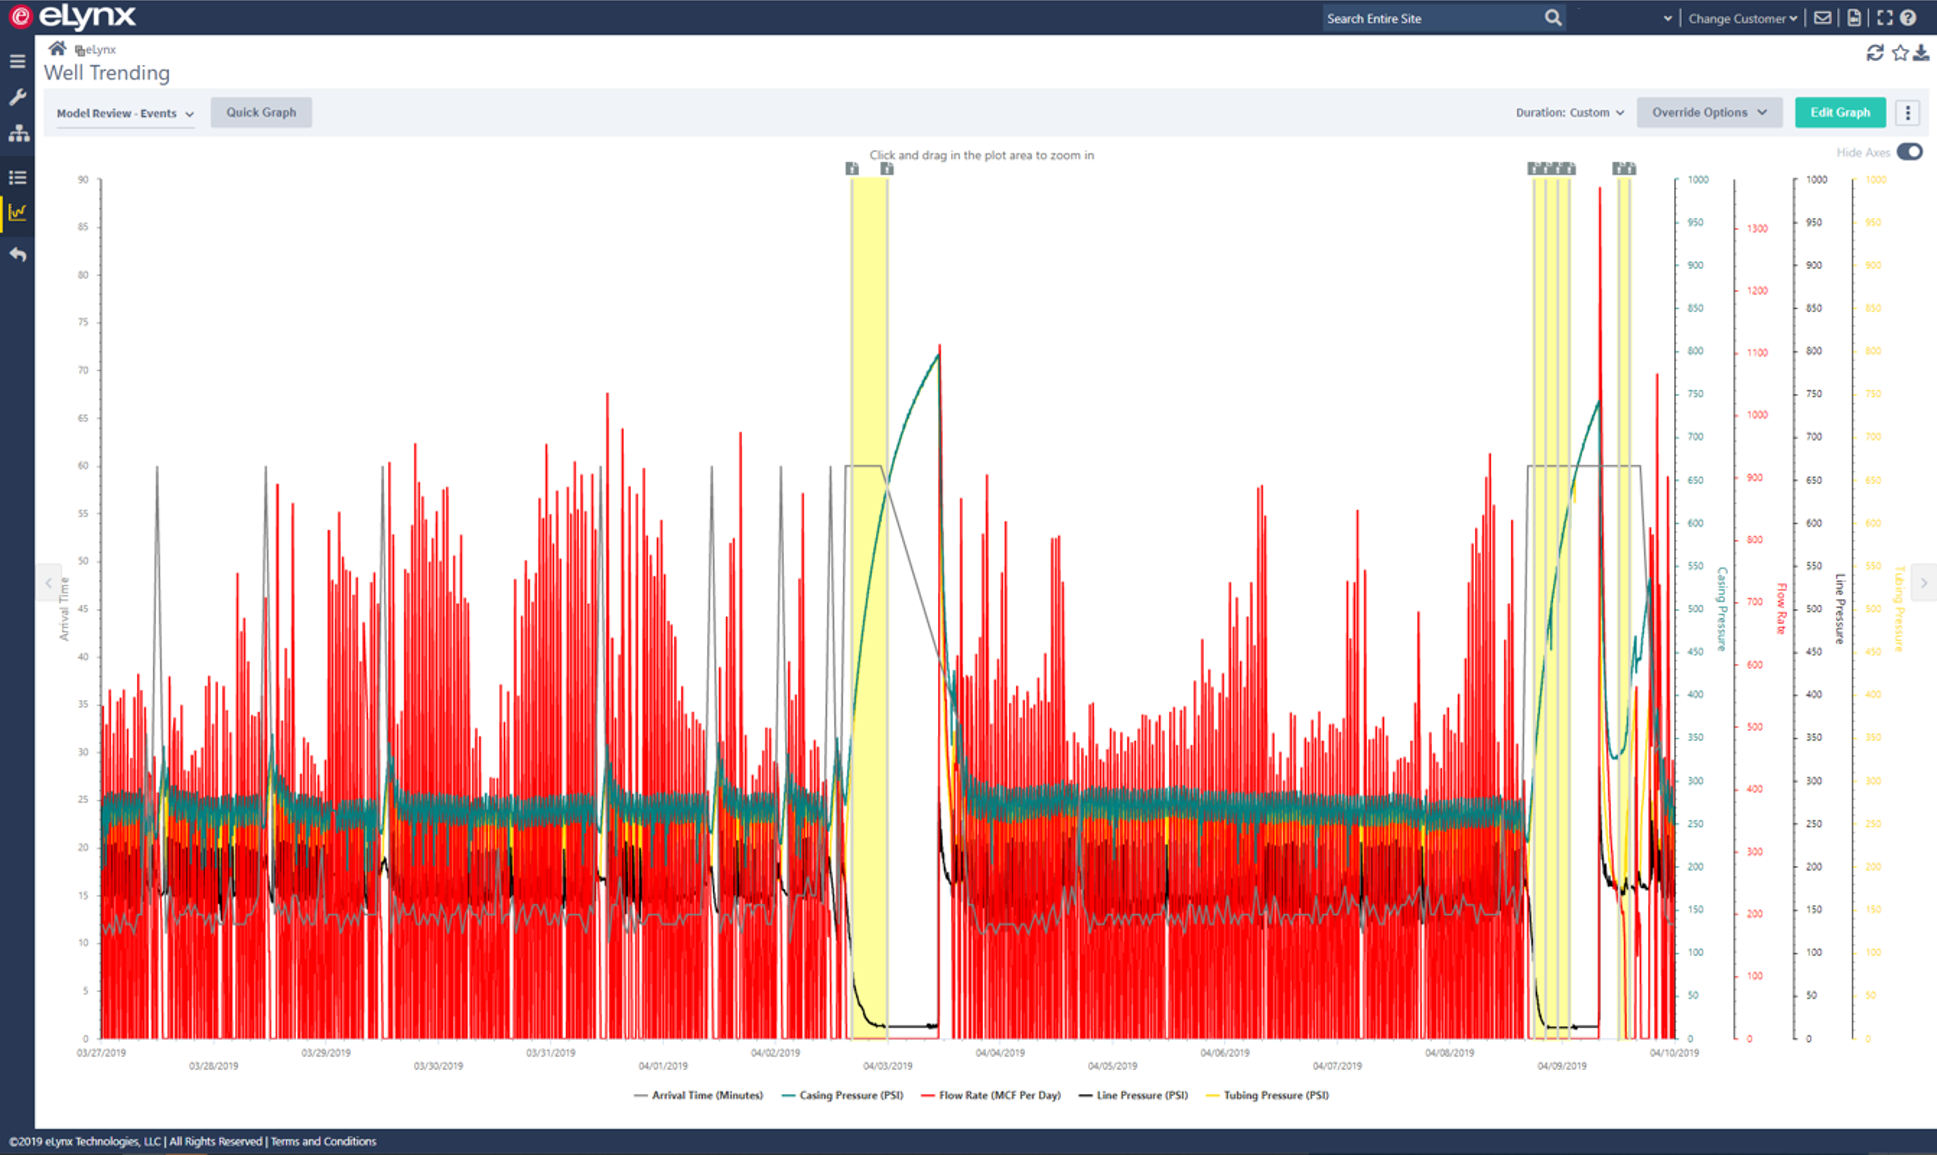 SCADA System alarm management with time series analysis, time series models. Intended to reduce alarm notifications operators receive. Data collection of points in time for data analytics initiatives.